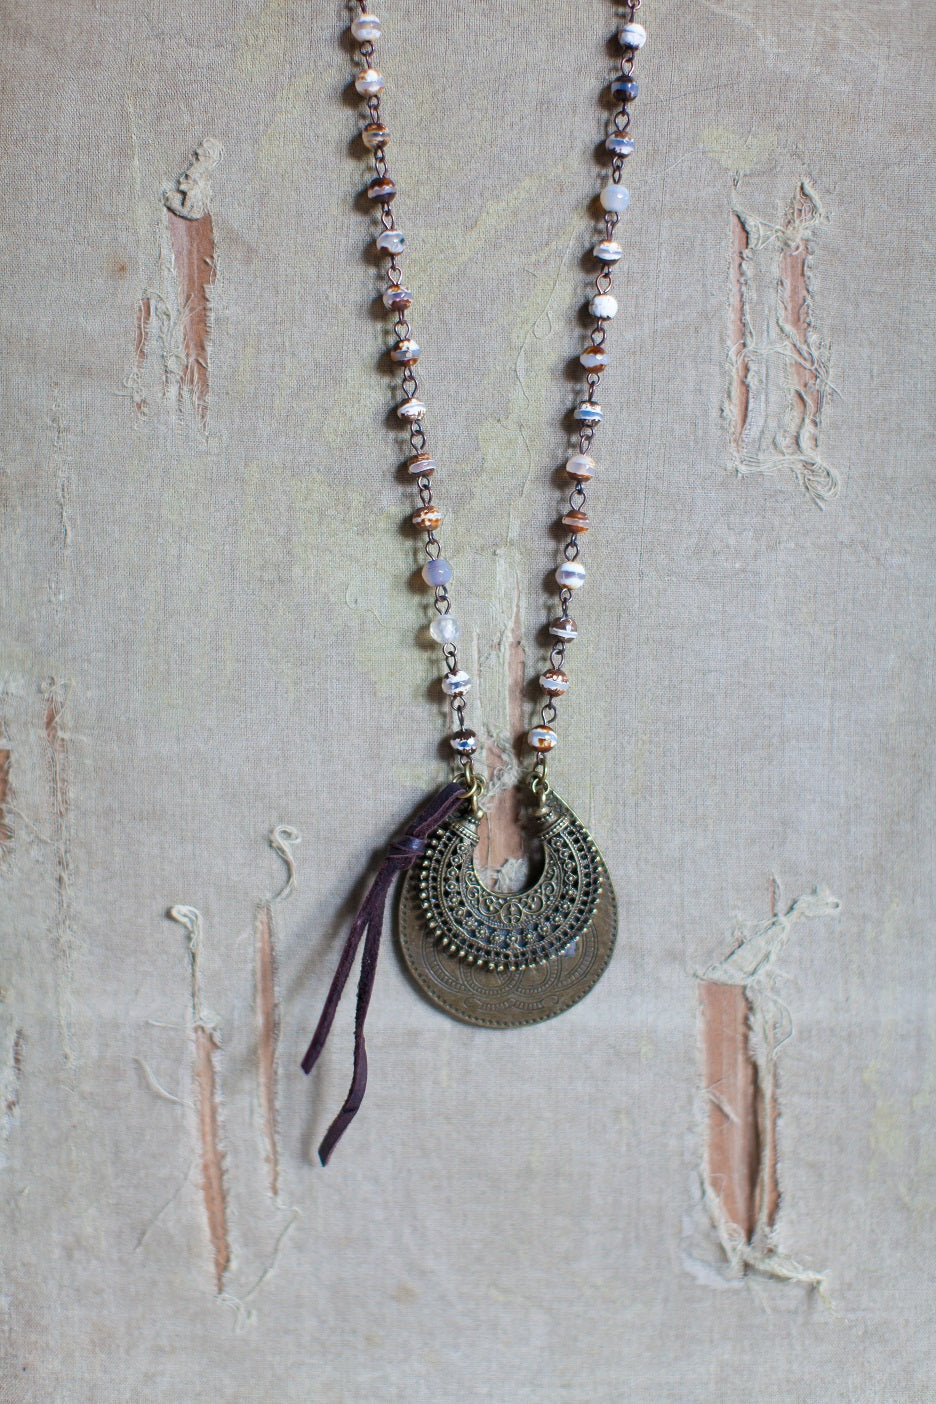 Leather and Beaded Necklace with Moon Shaped Charm